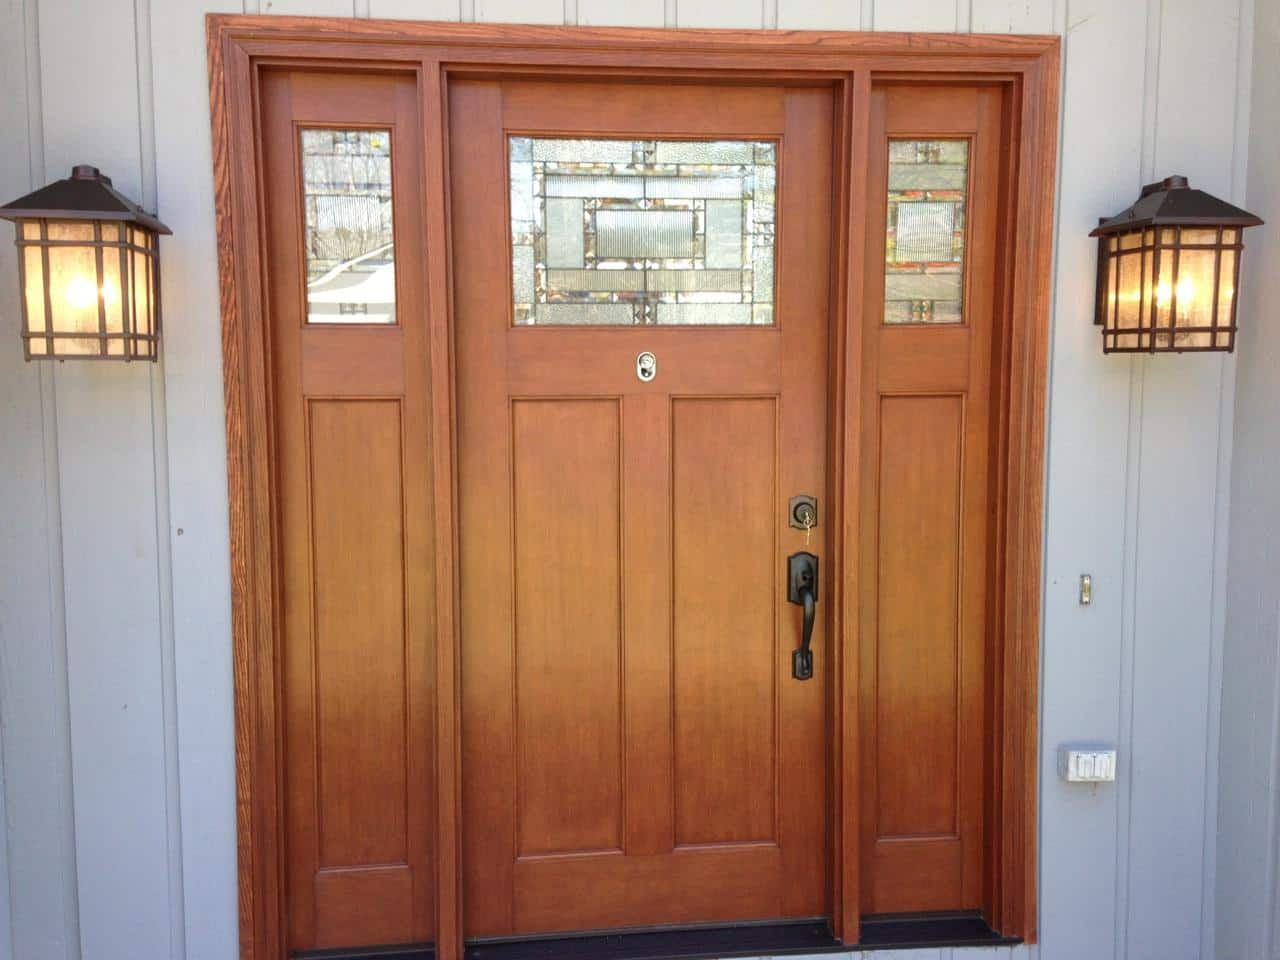 960 #7F3E26 Albany Door Company Inc Fiberglass Doors Albany Door Company Inc Is A  pic Fiberglass Entry Doors With Glass 38611280